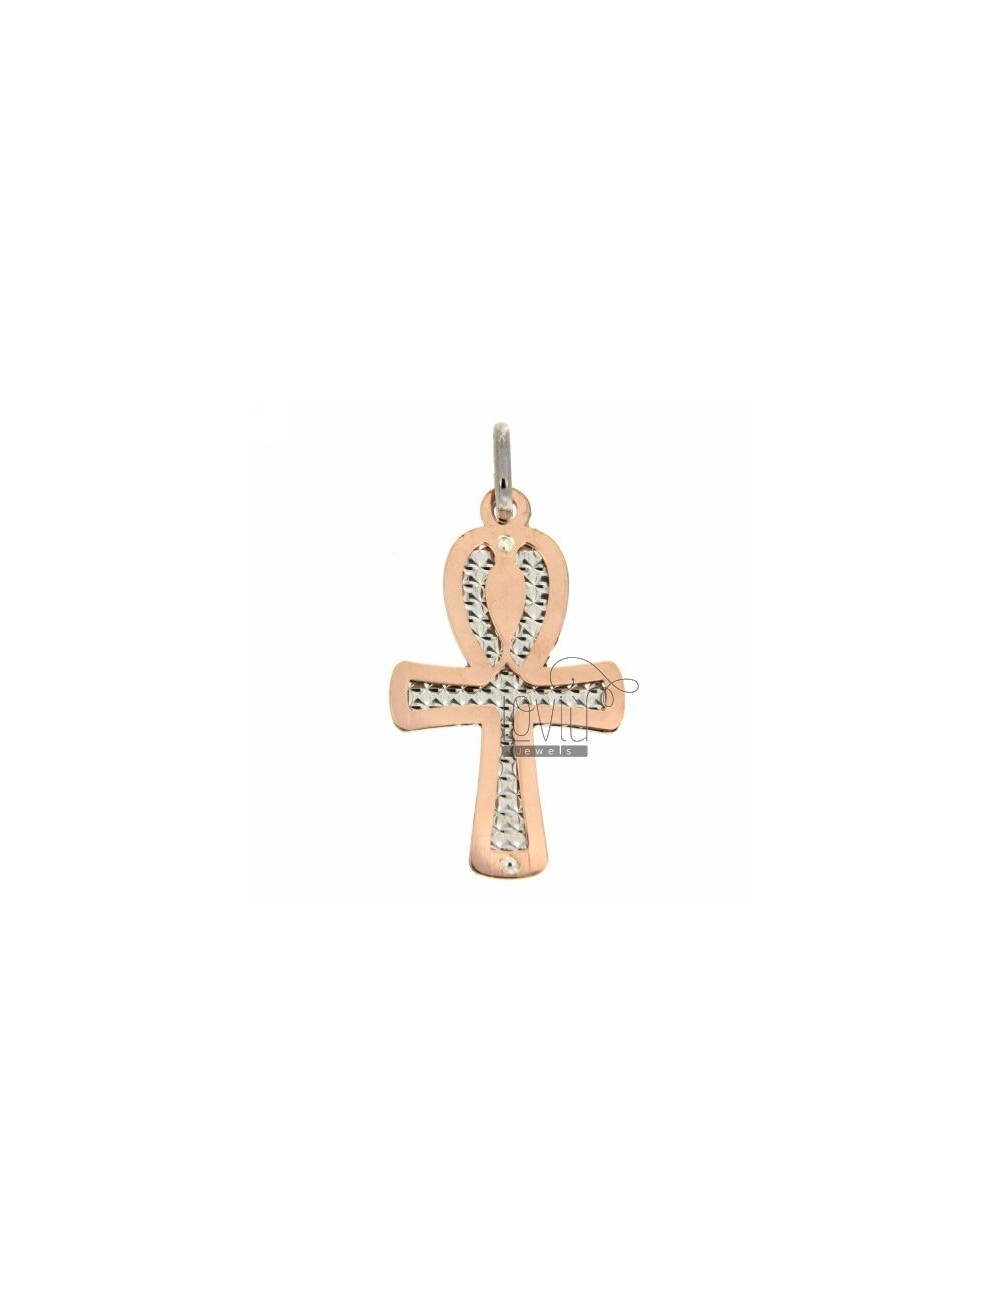 CROSS PENDANT GOLD PLATED PINK DIAMOND IN SILVER WITH INTERNAL 925